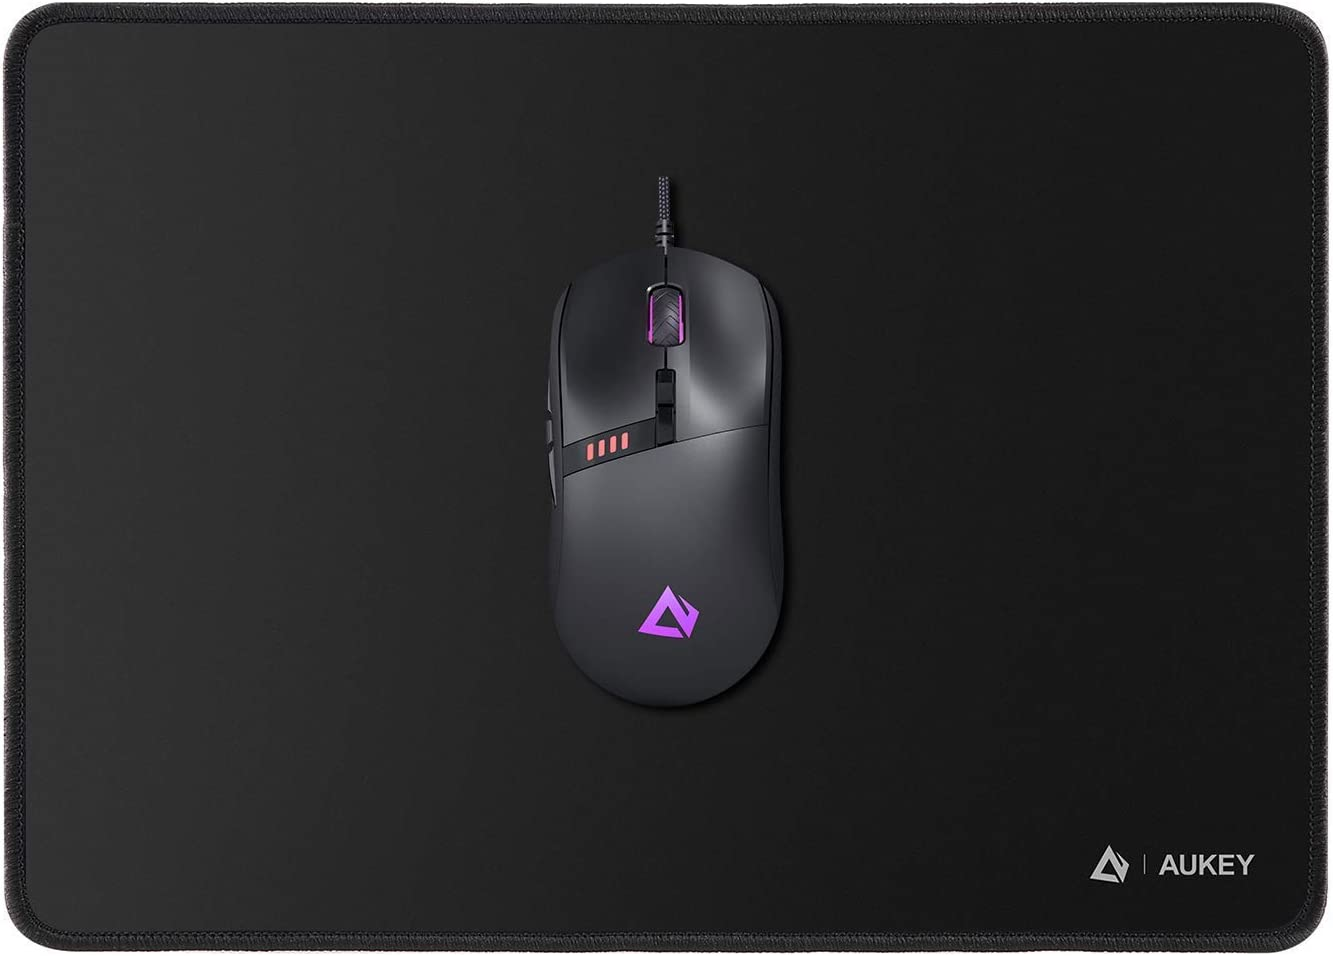 AUKEY Mouse Pad, Gaming Mouse Mat Medium-Size (350 by 250mm) & Knight Gaming Mouse, RGB Wired Gaming Mouse with 10000 DPI